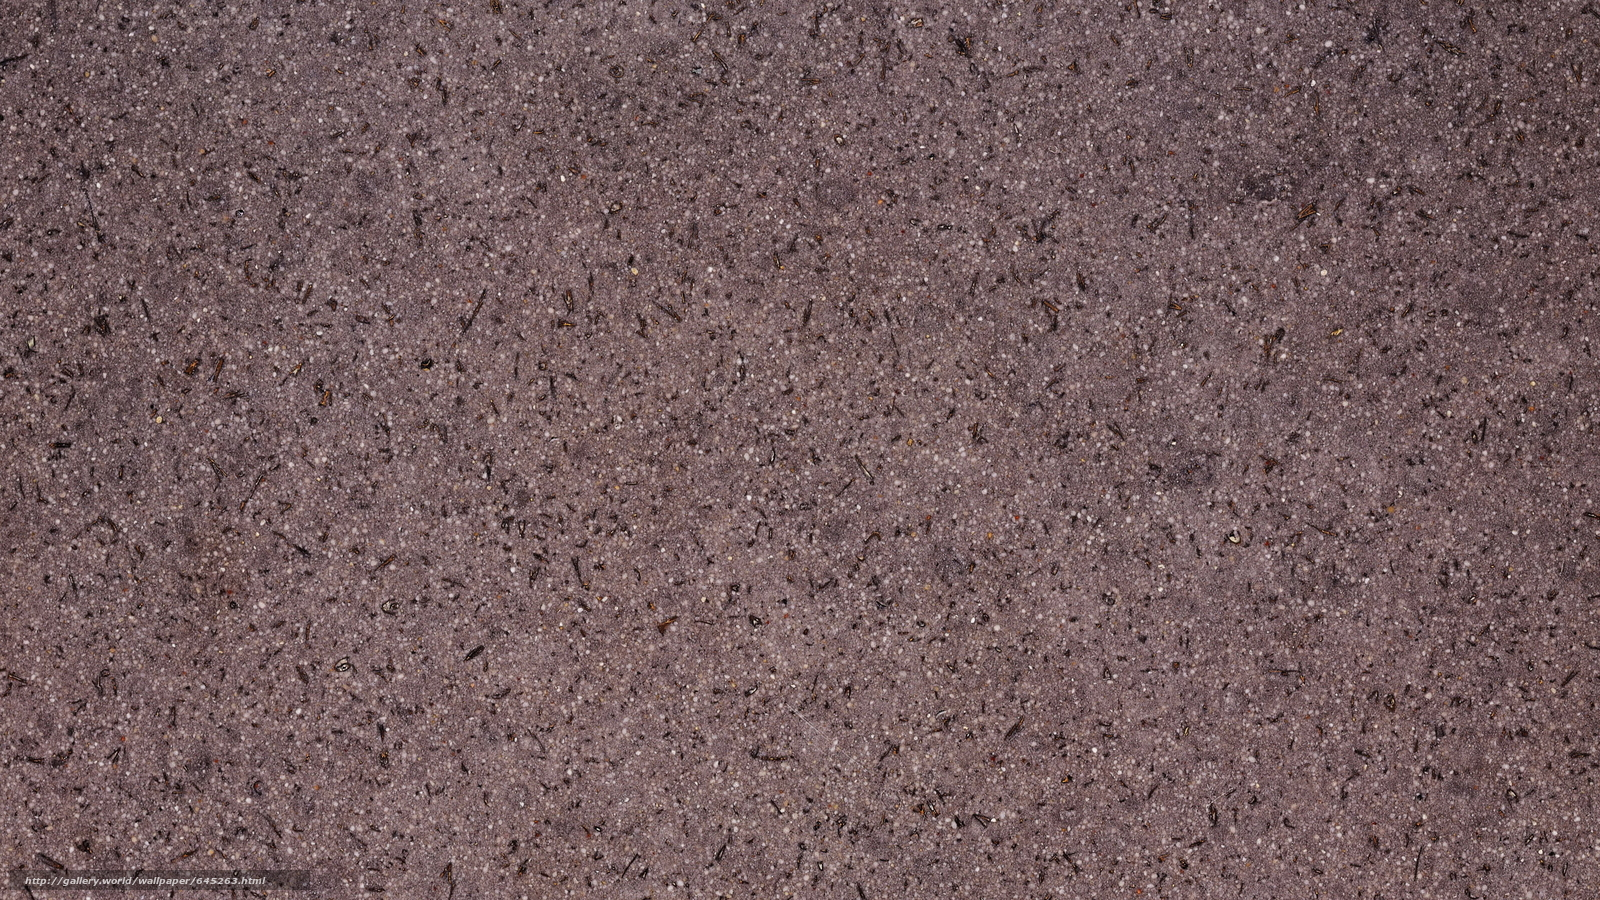 Download wallpaper TEXTURE,  Texture,  stone,  texture stone free desktop wallpaper in the resolution 2880x1620 — picture №645263